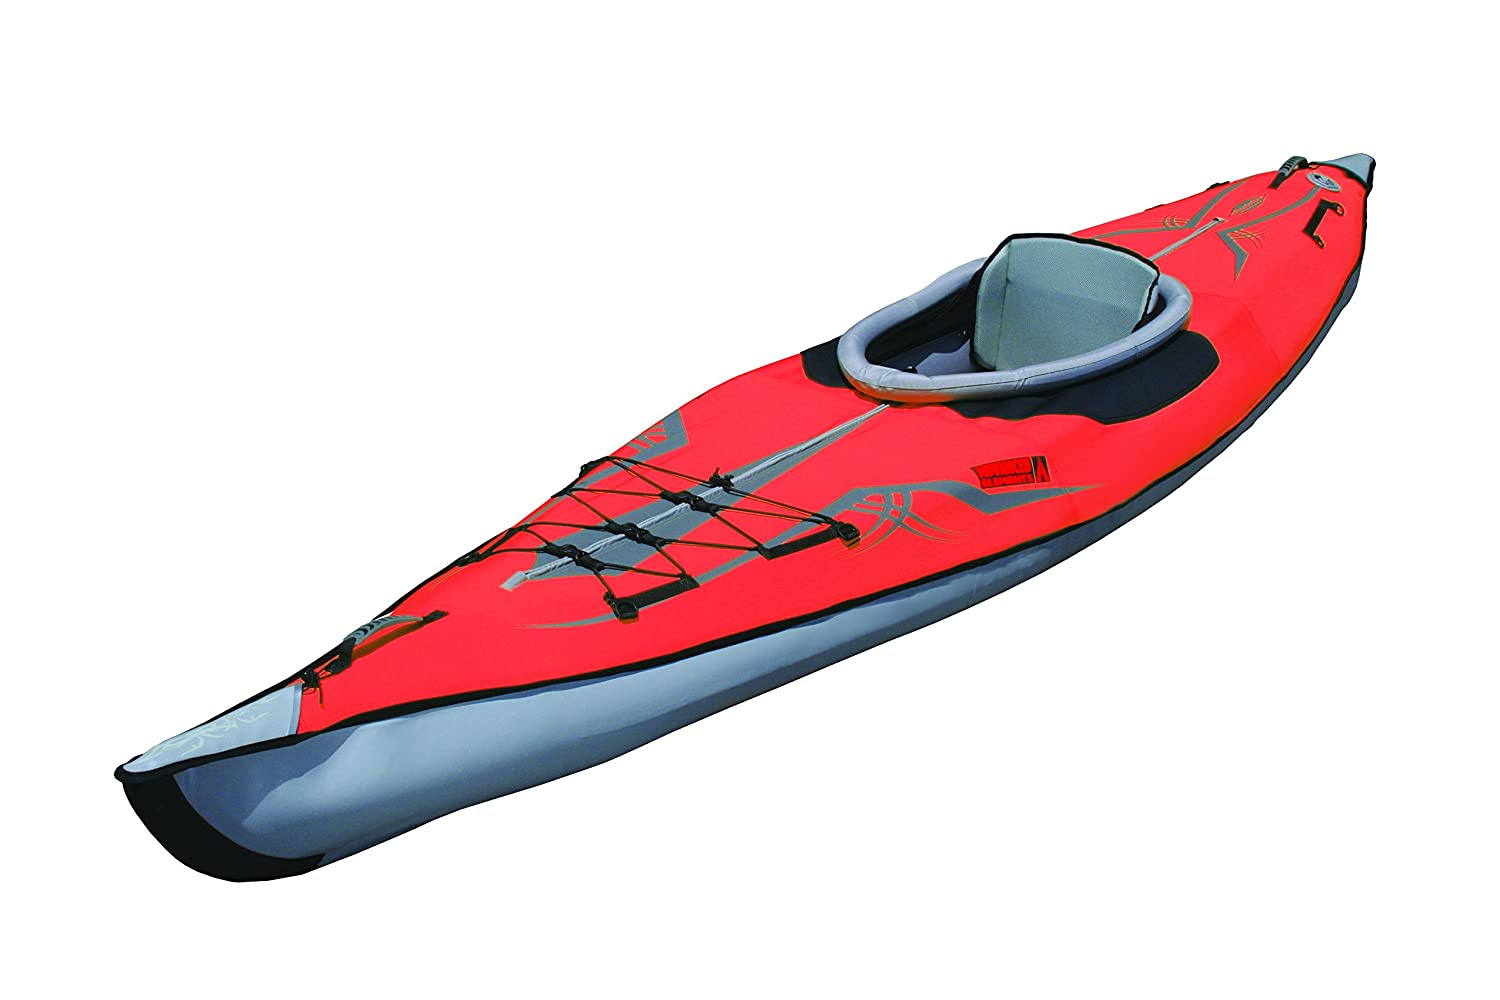 Advanced Elements AdvancedFrame Expedition Kayak - Kayak hinchable, color rojo: Amazon.es: Deportes y aire libre